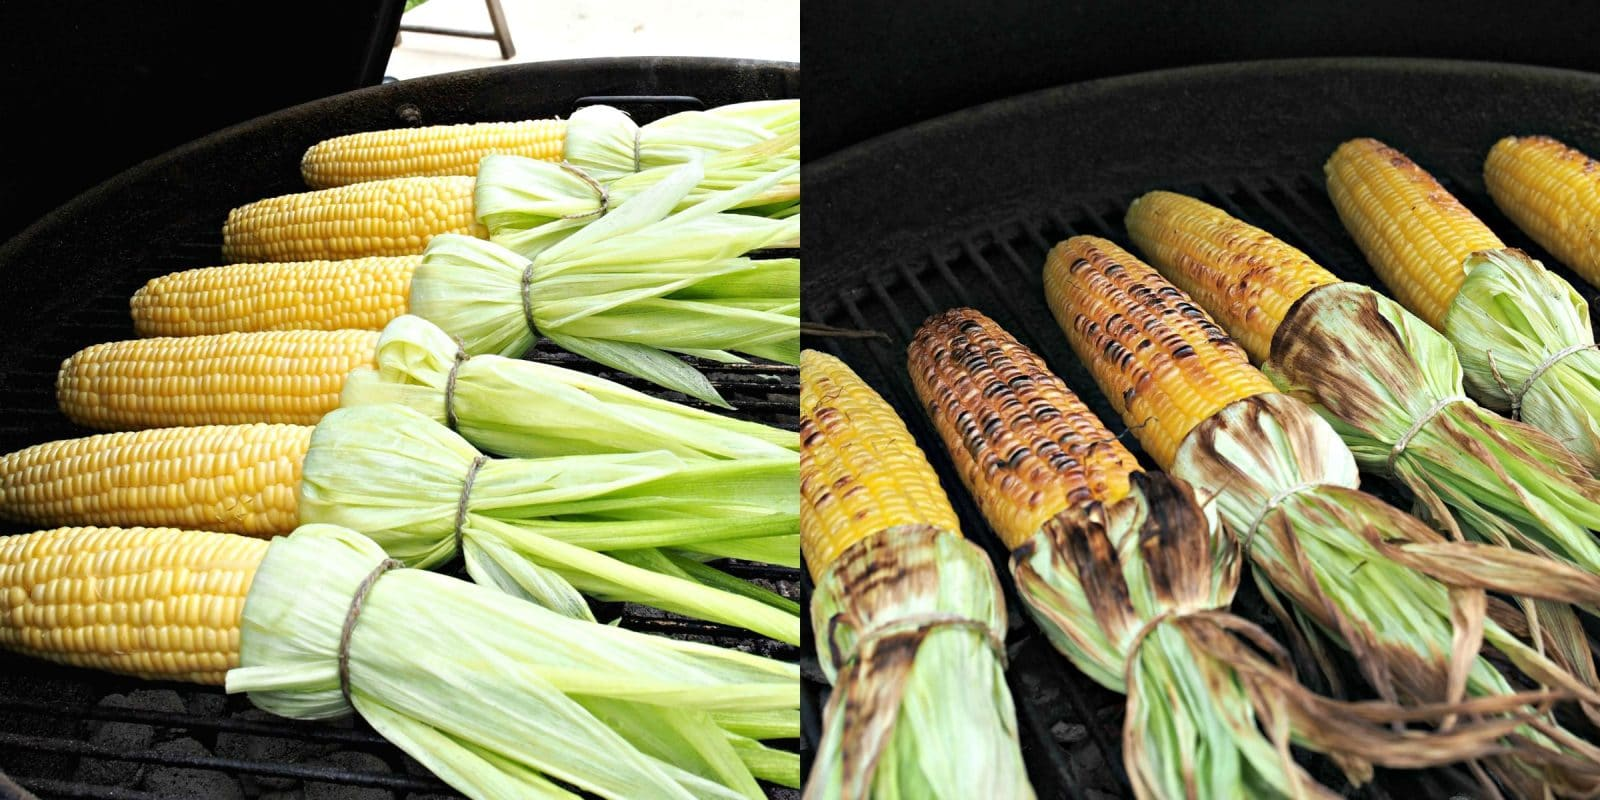 Grilled Corn - smoky, sweet and fresh, this corn-on-the-cob has all the flavors great corn should. Serve as-is or brush with your favorite condiment. Simply Sated